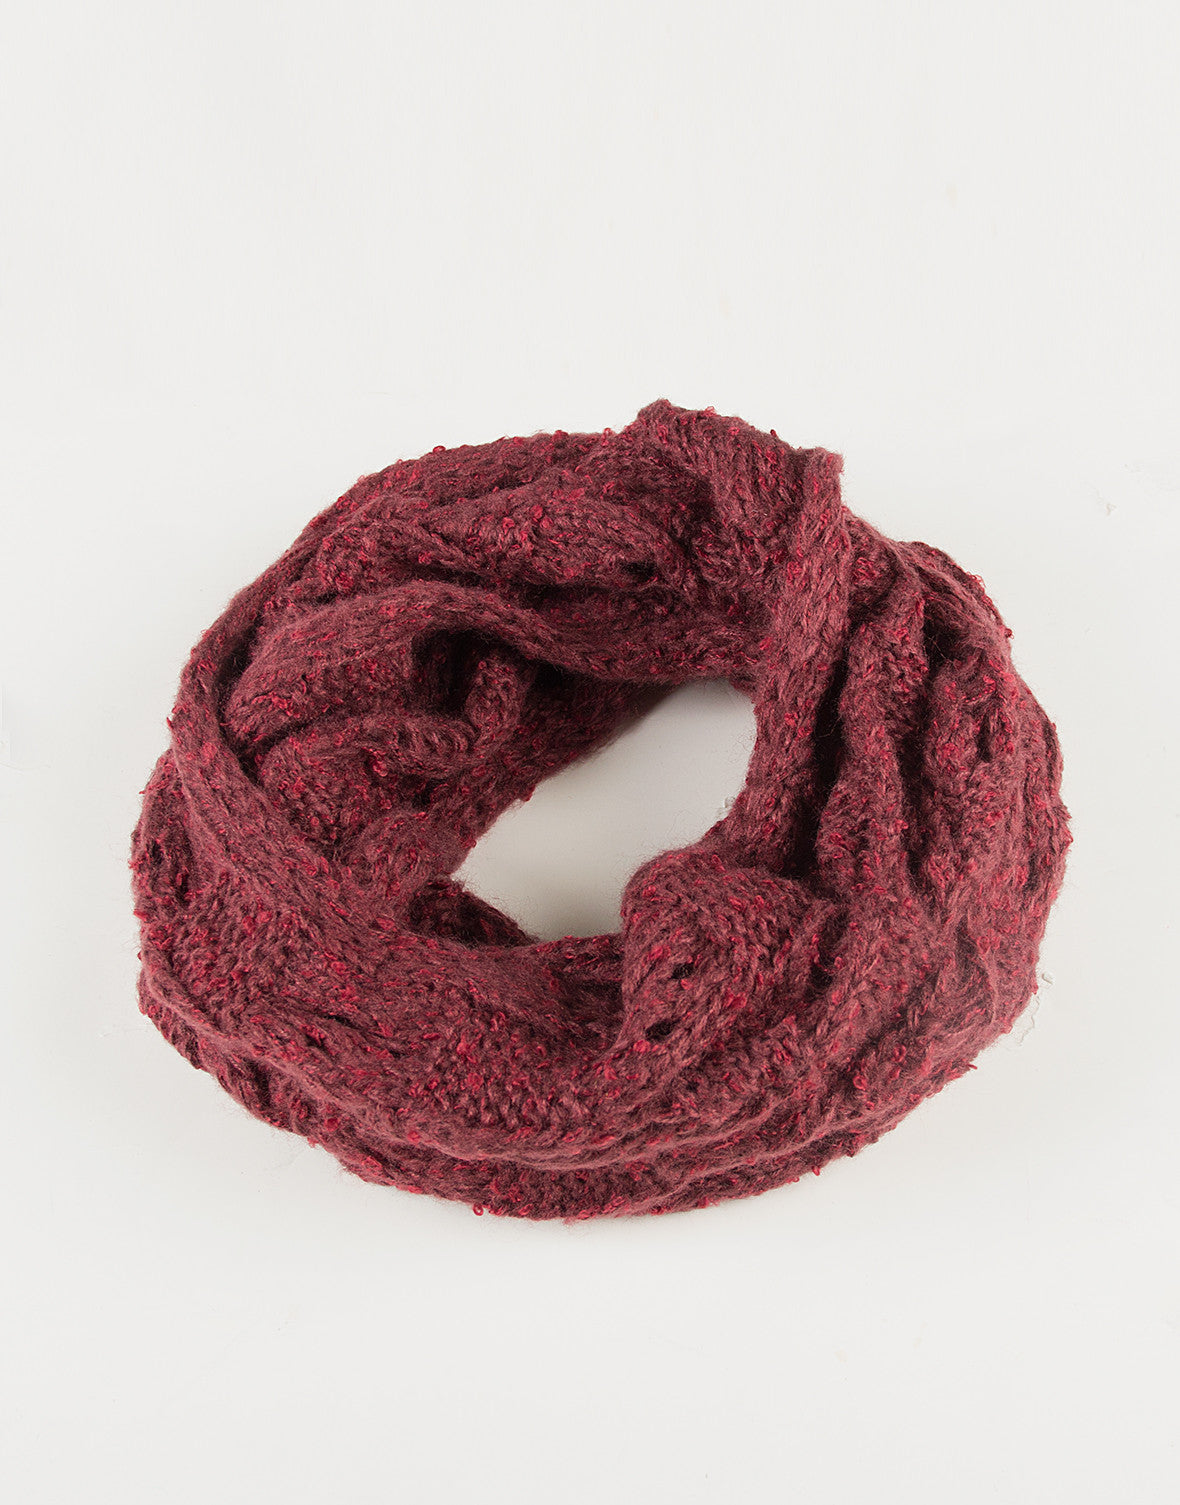 Holey Knit Infinity Scarf - Plum - 2020AVE